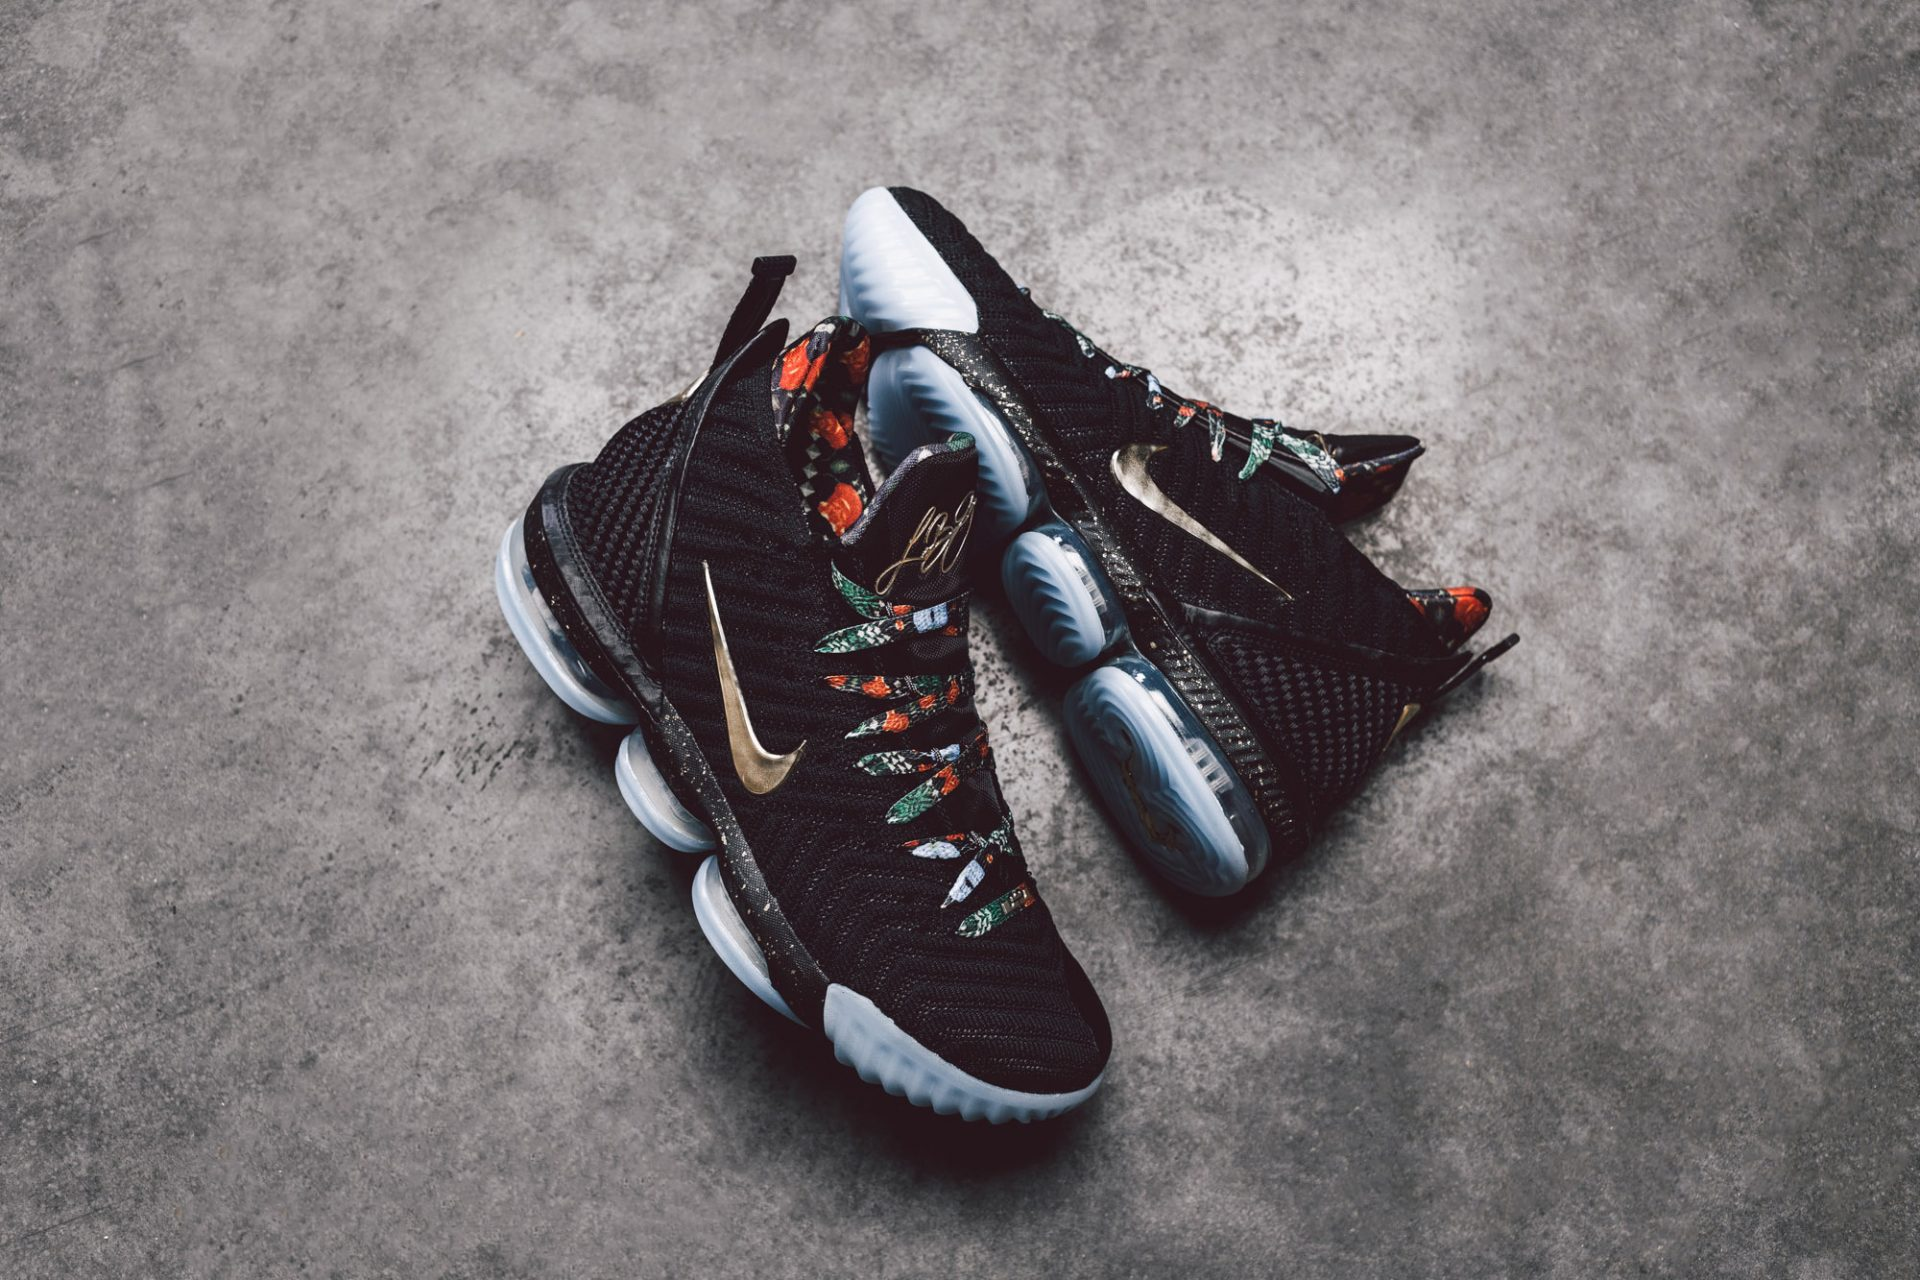 newest 345ba f04af The Nike Lebron VI – King s Throne. February 20, 2019   Events   Fashion    Footwear